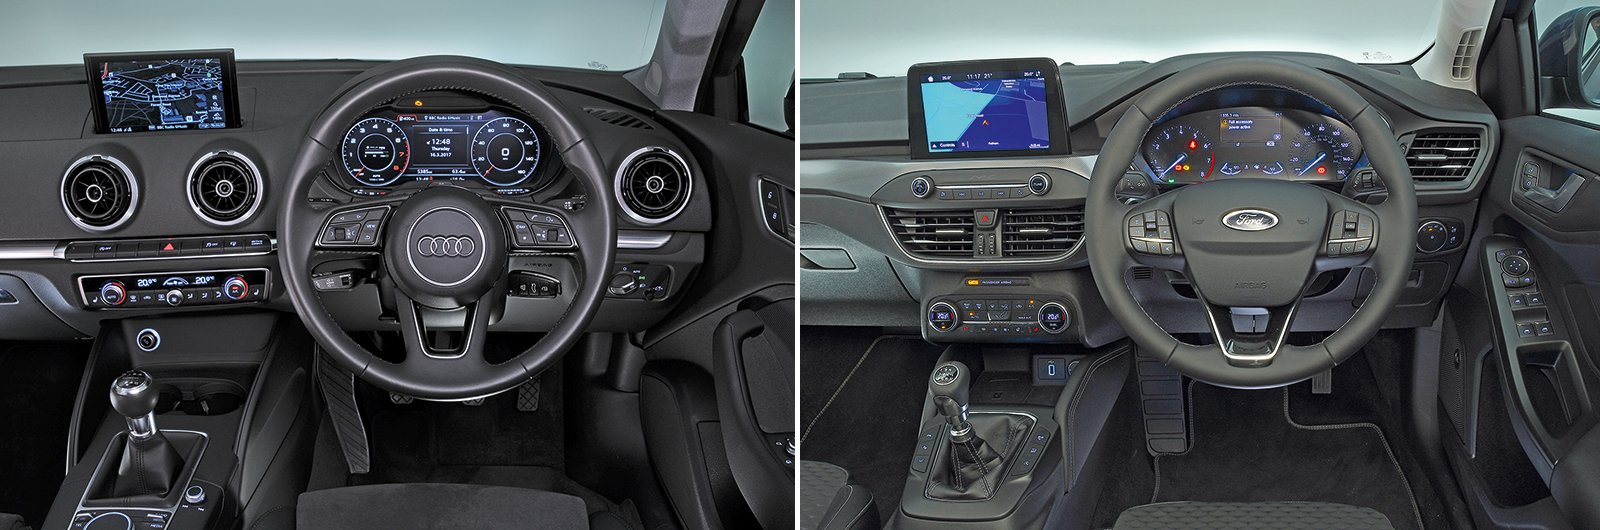 New Ford Focus vs used Audi A3 interior